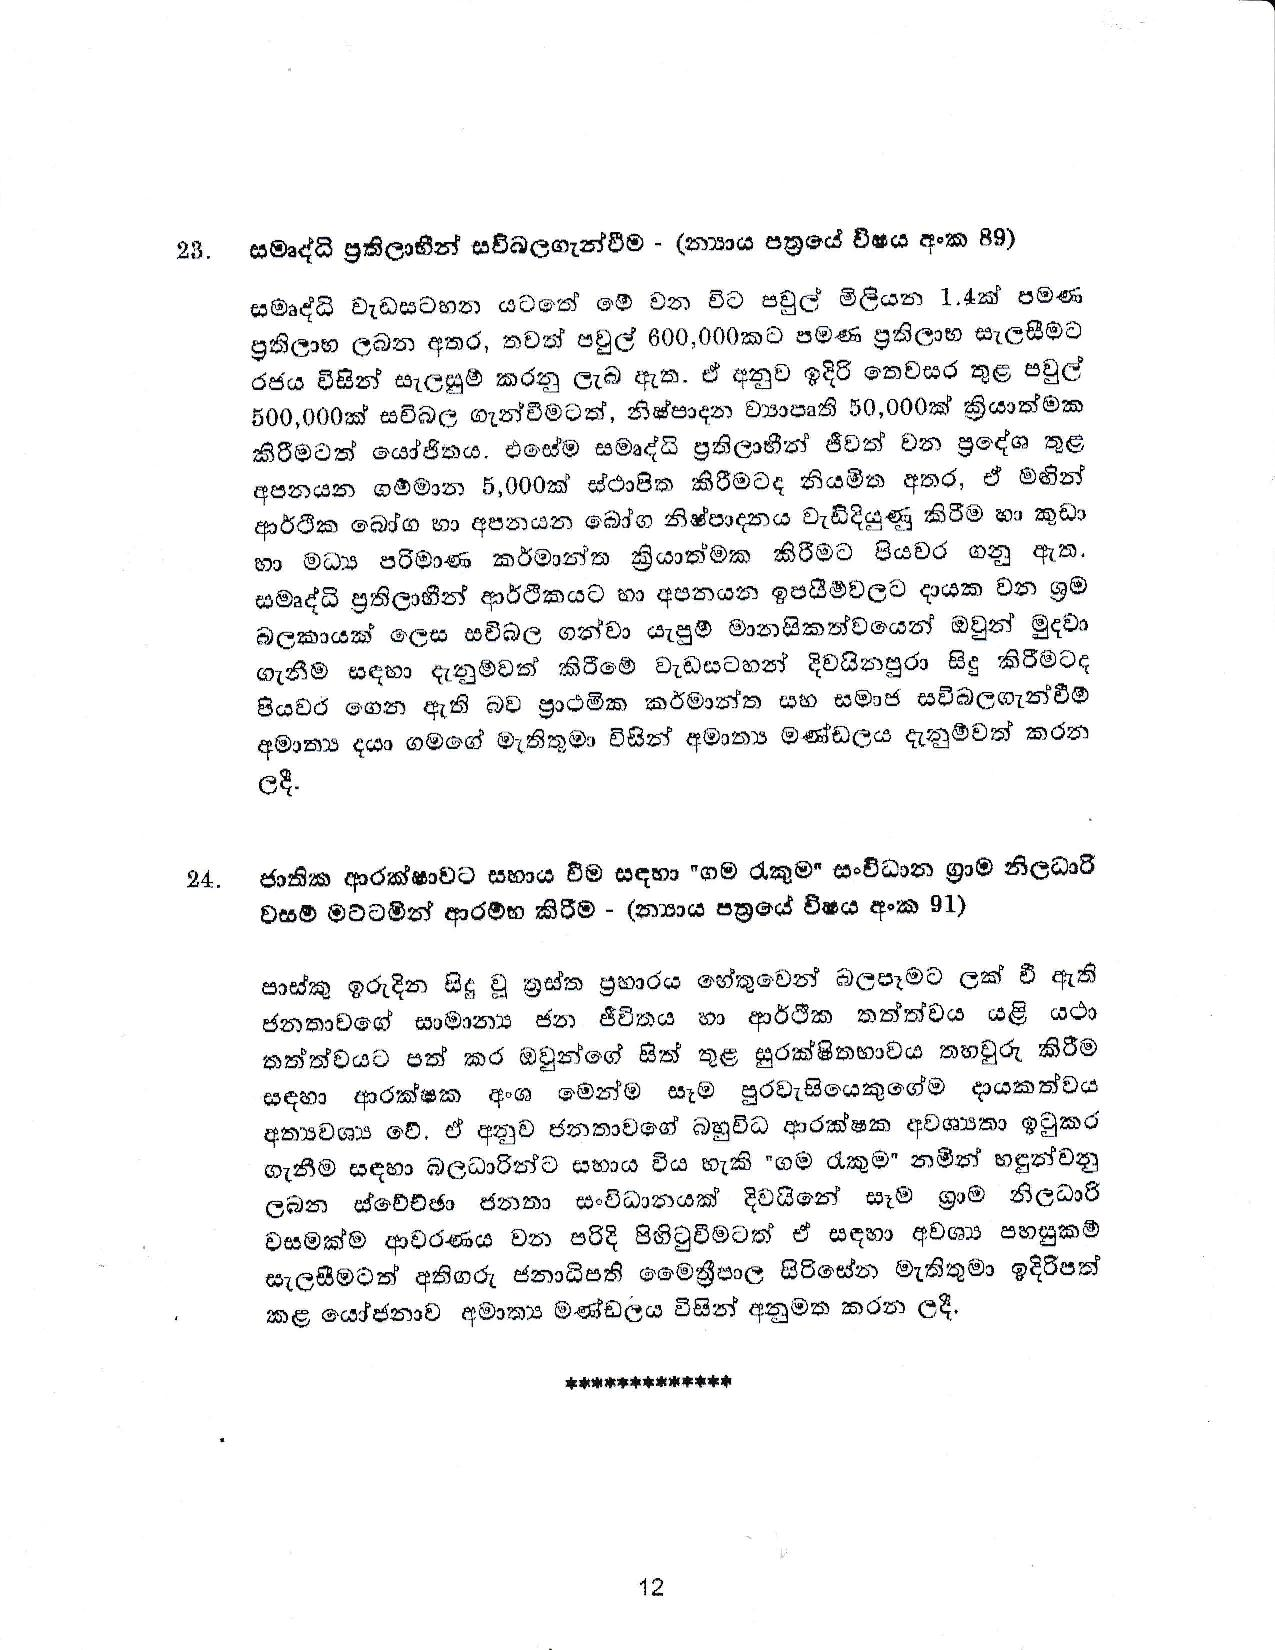 Cabinet Decision on 28.05.2019 page 012